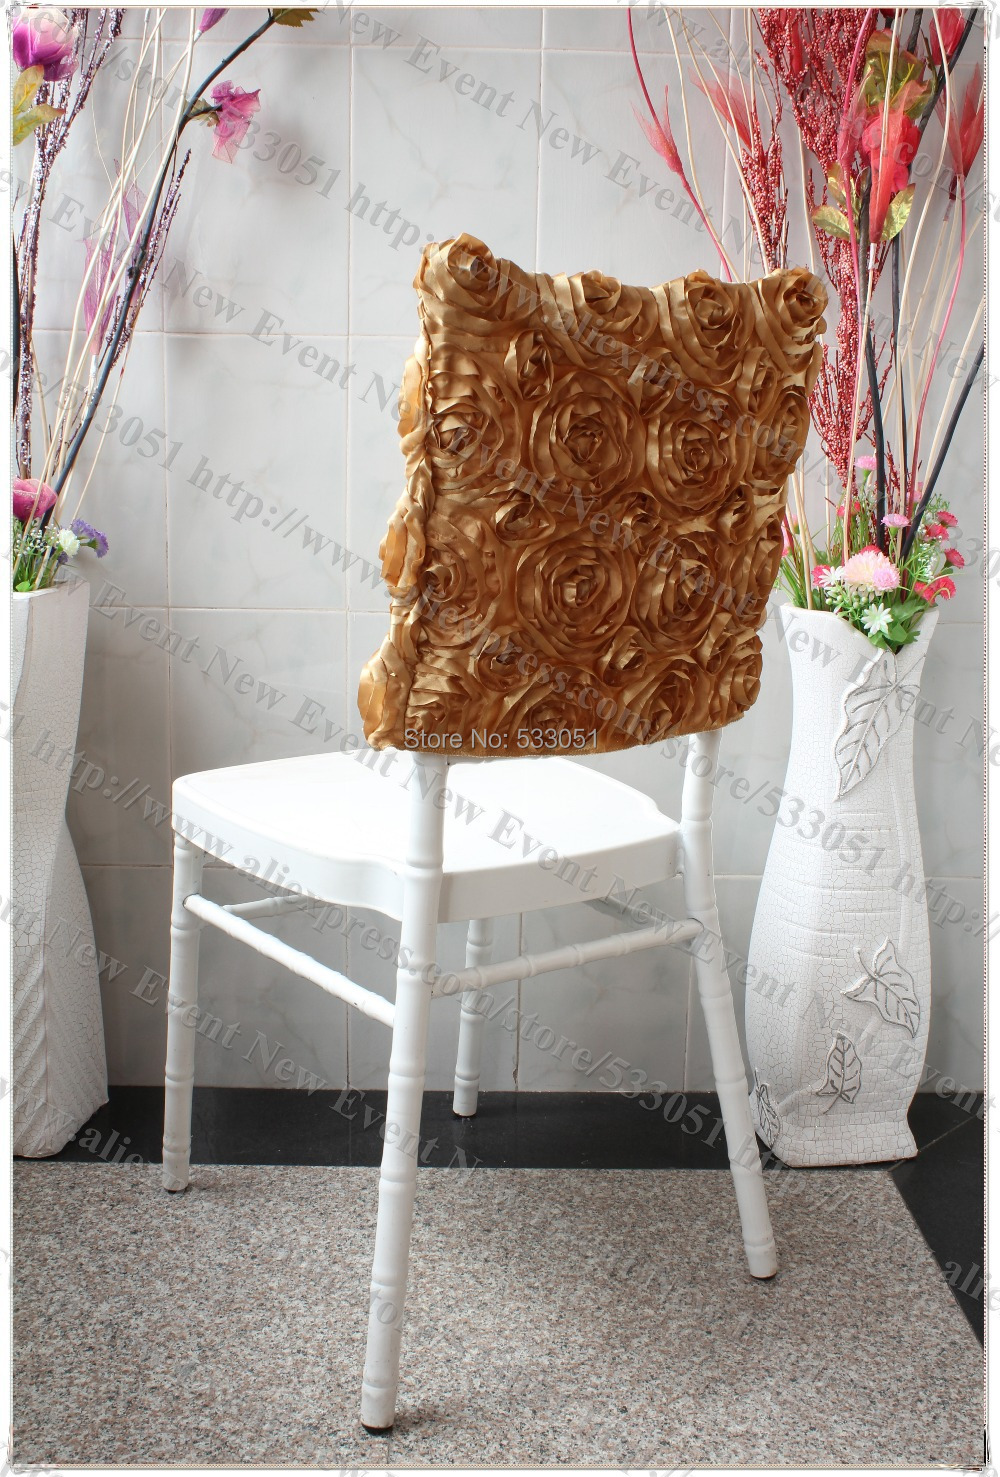 chair caps covers revolving price in kolkata gold 3d round rosette cap hood cover satin embroidered runner for wedding party banquet decorations